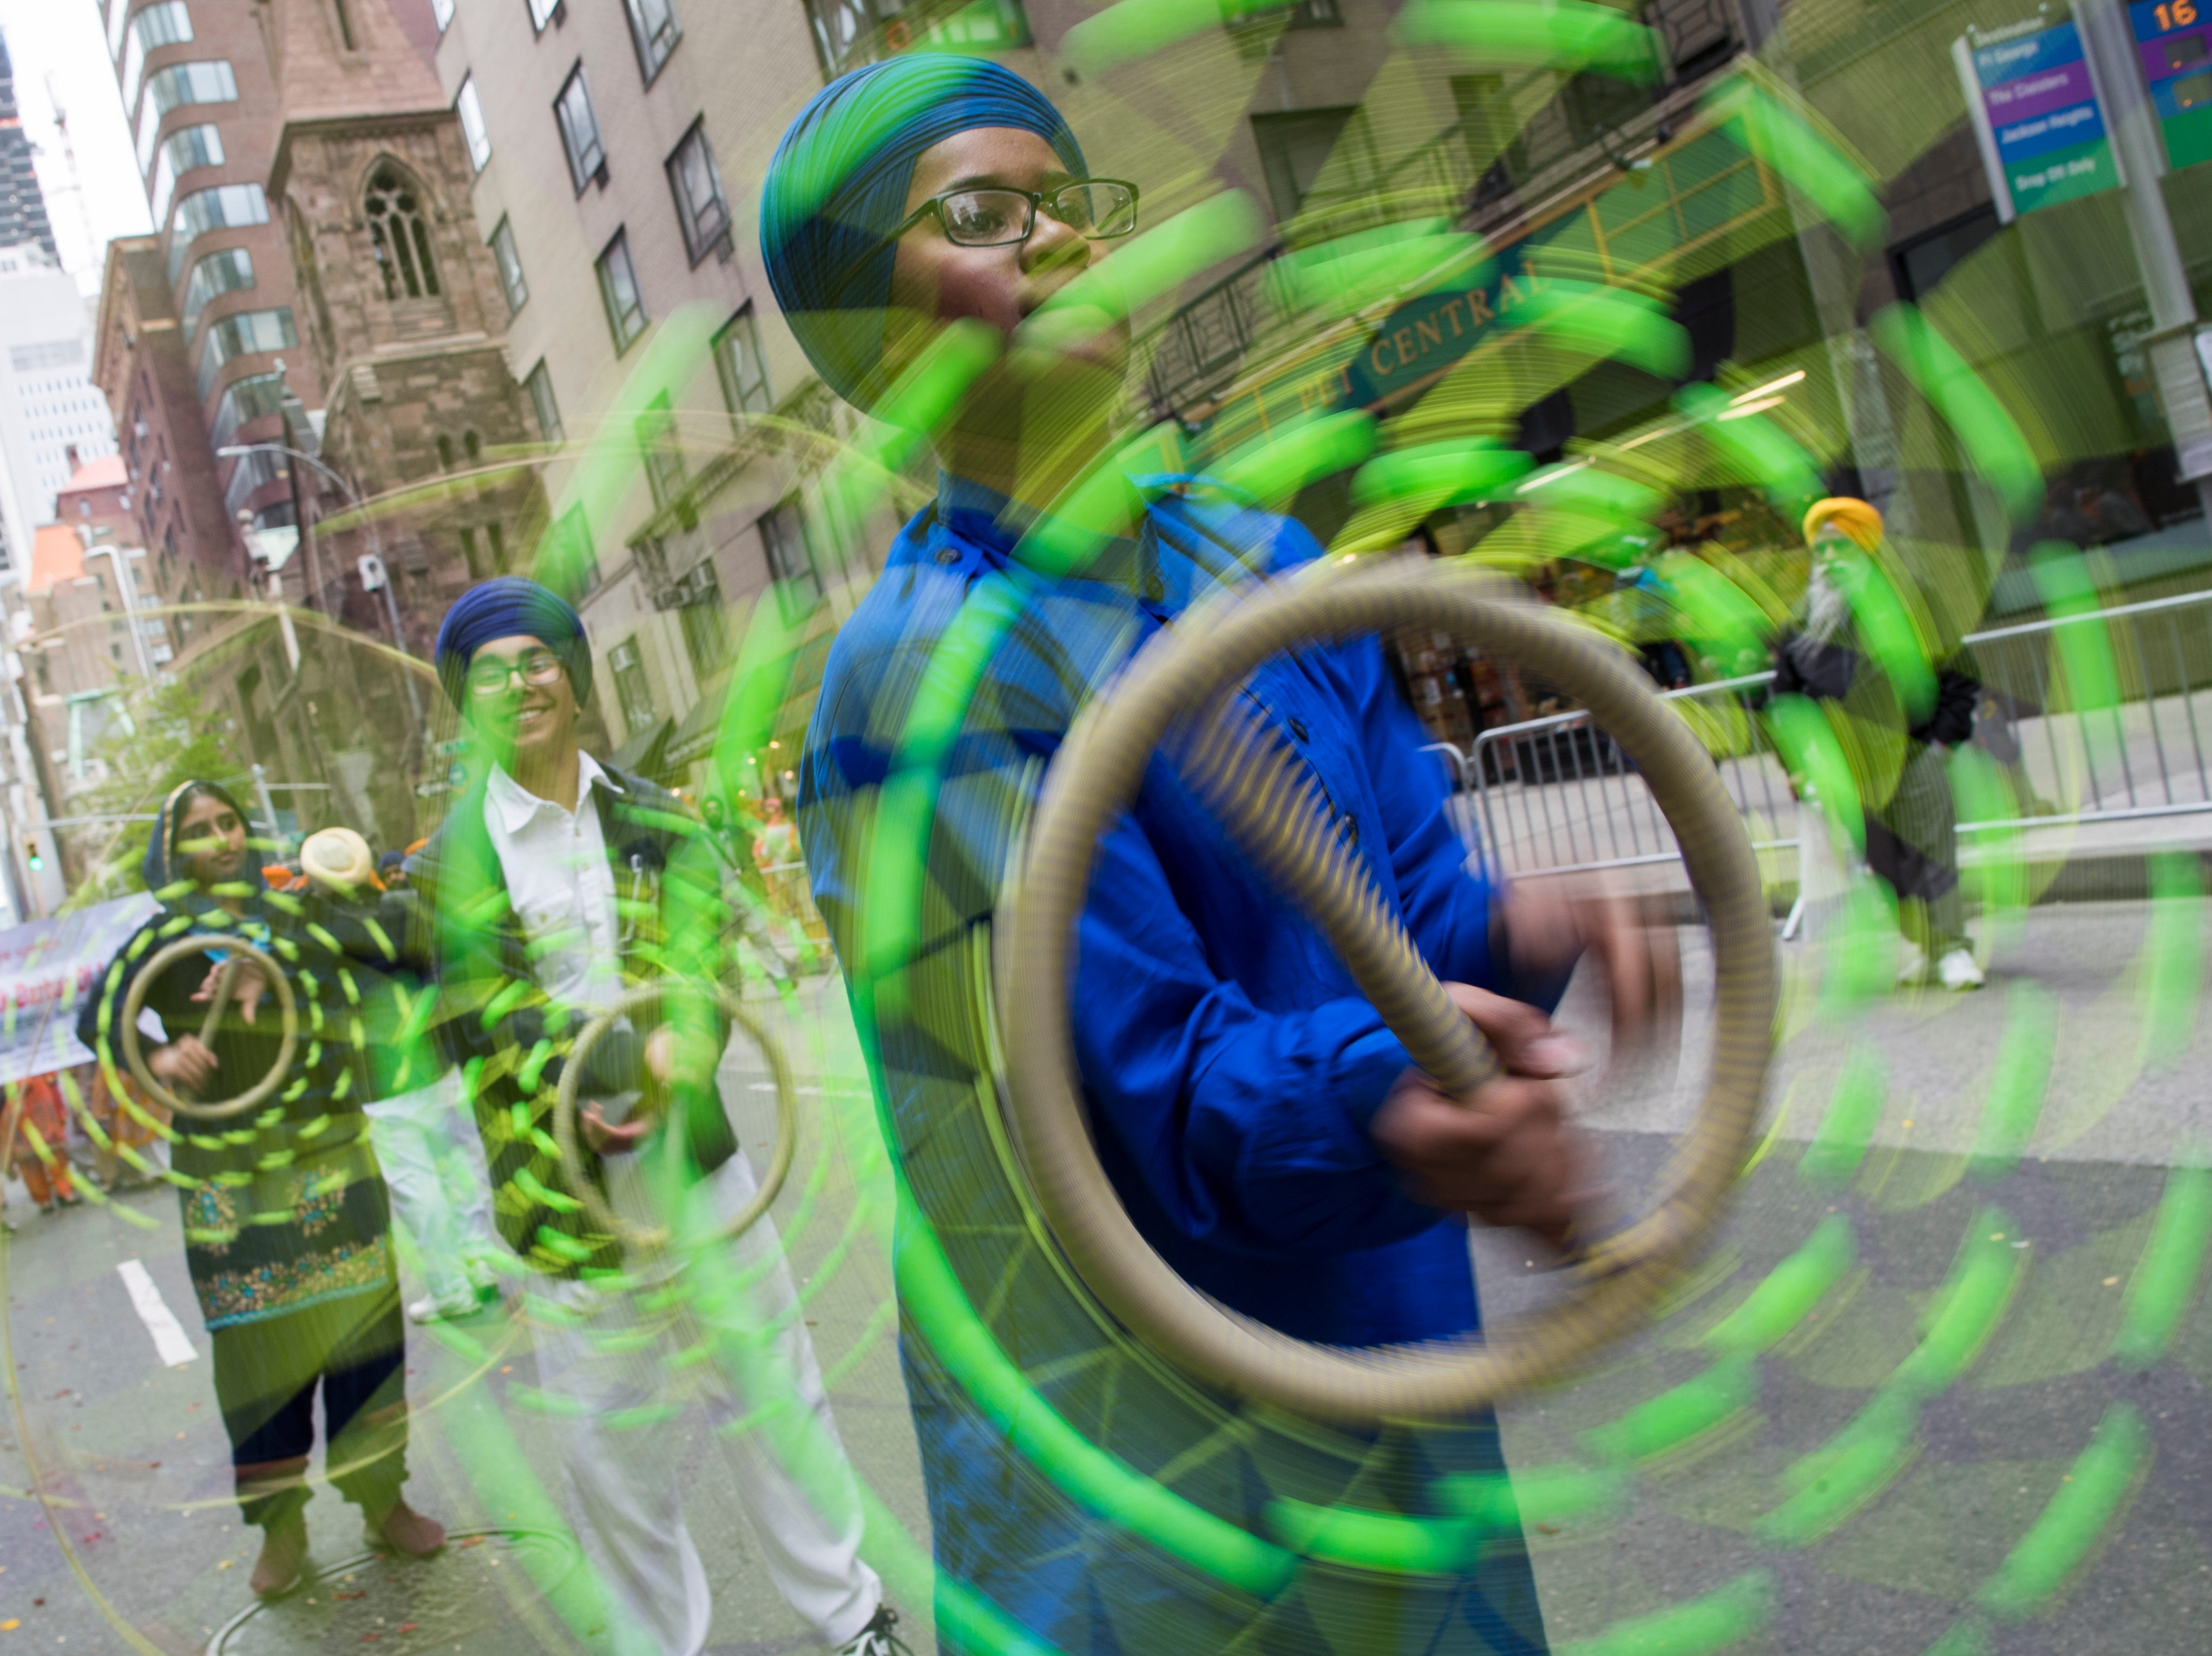 Participants twirl Shastars, a weapon used in the martial art Gatka, during the Sikh Day Parade, celebrating the Sikh holiday of Vaisakhi, Saturday, April 27, 2019, in New York.